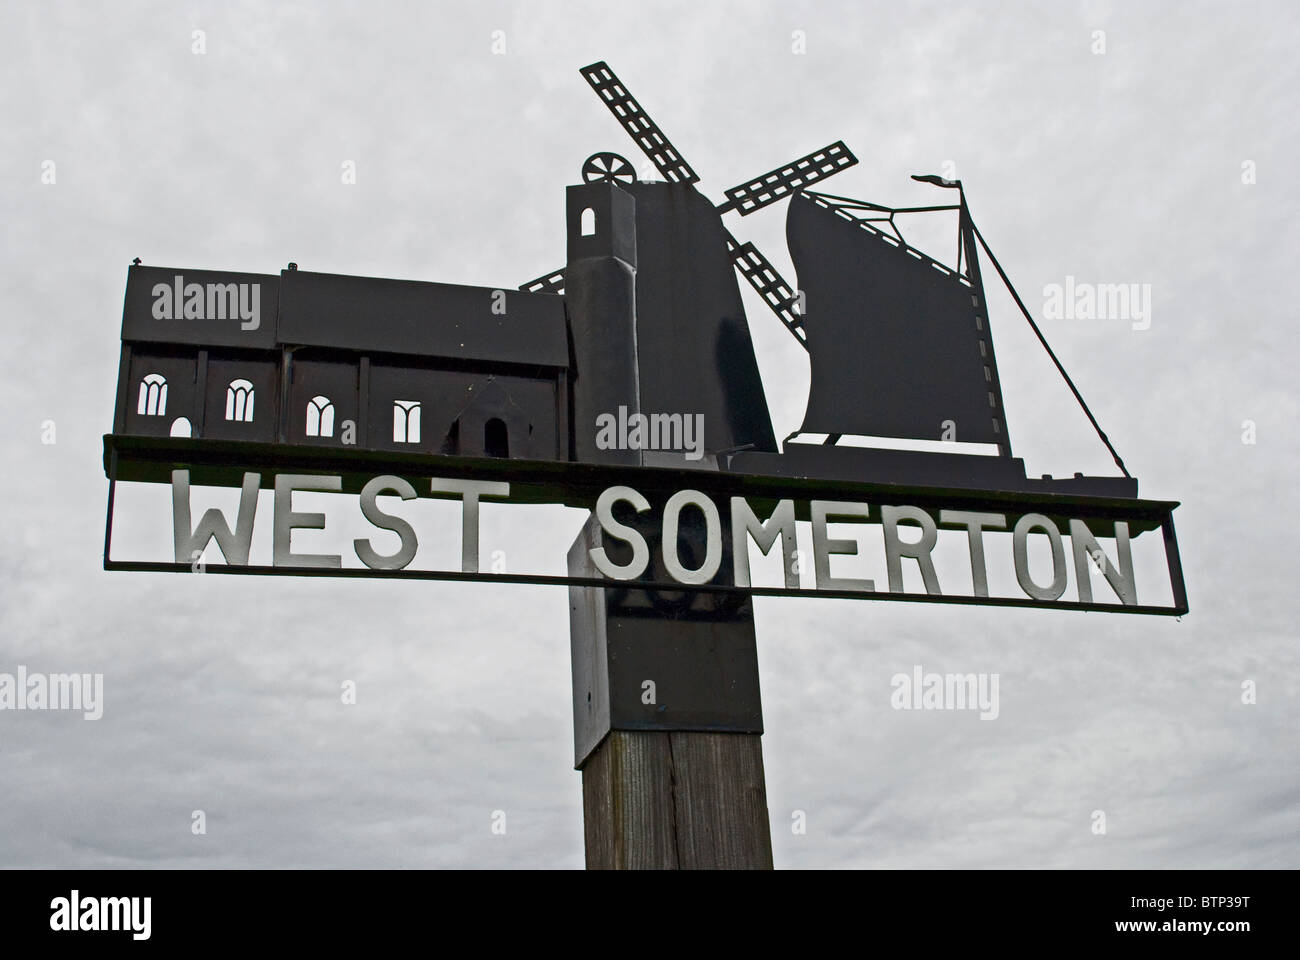 West Somerton sign, Norfolk. - Stock Image